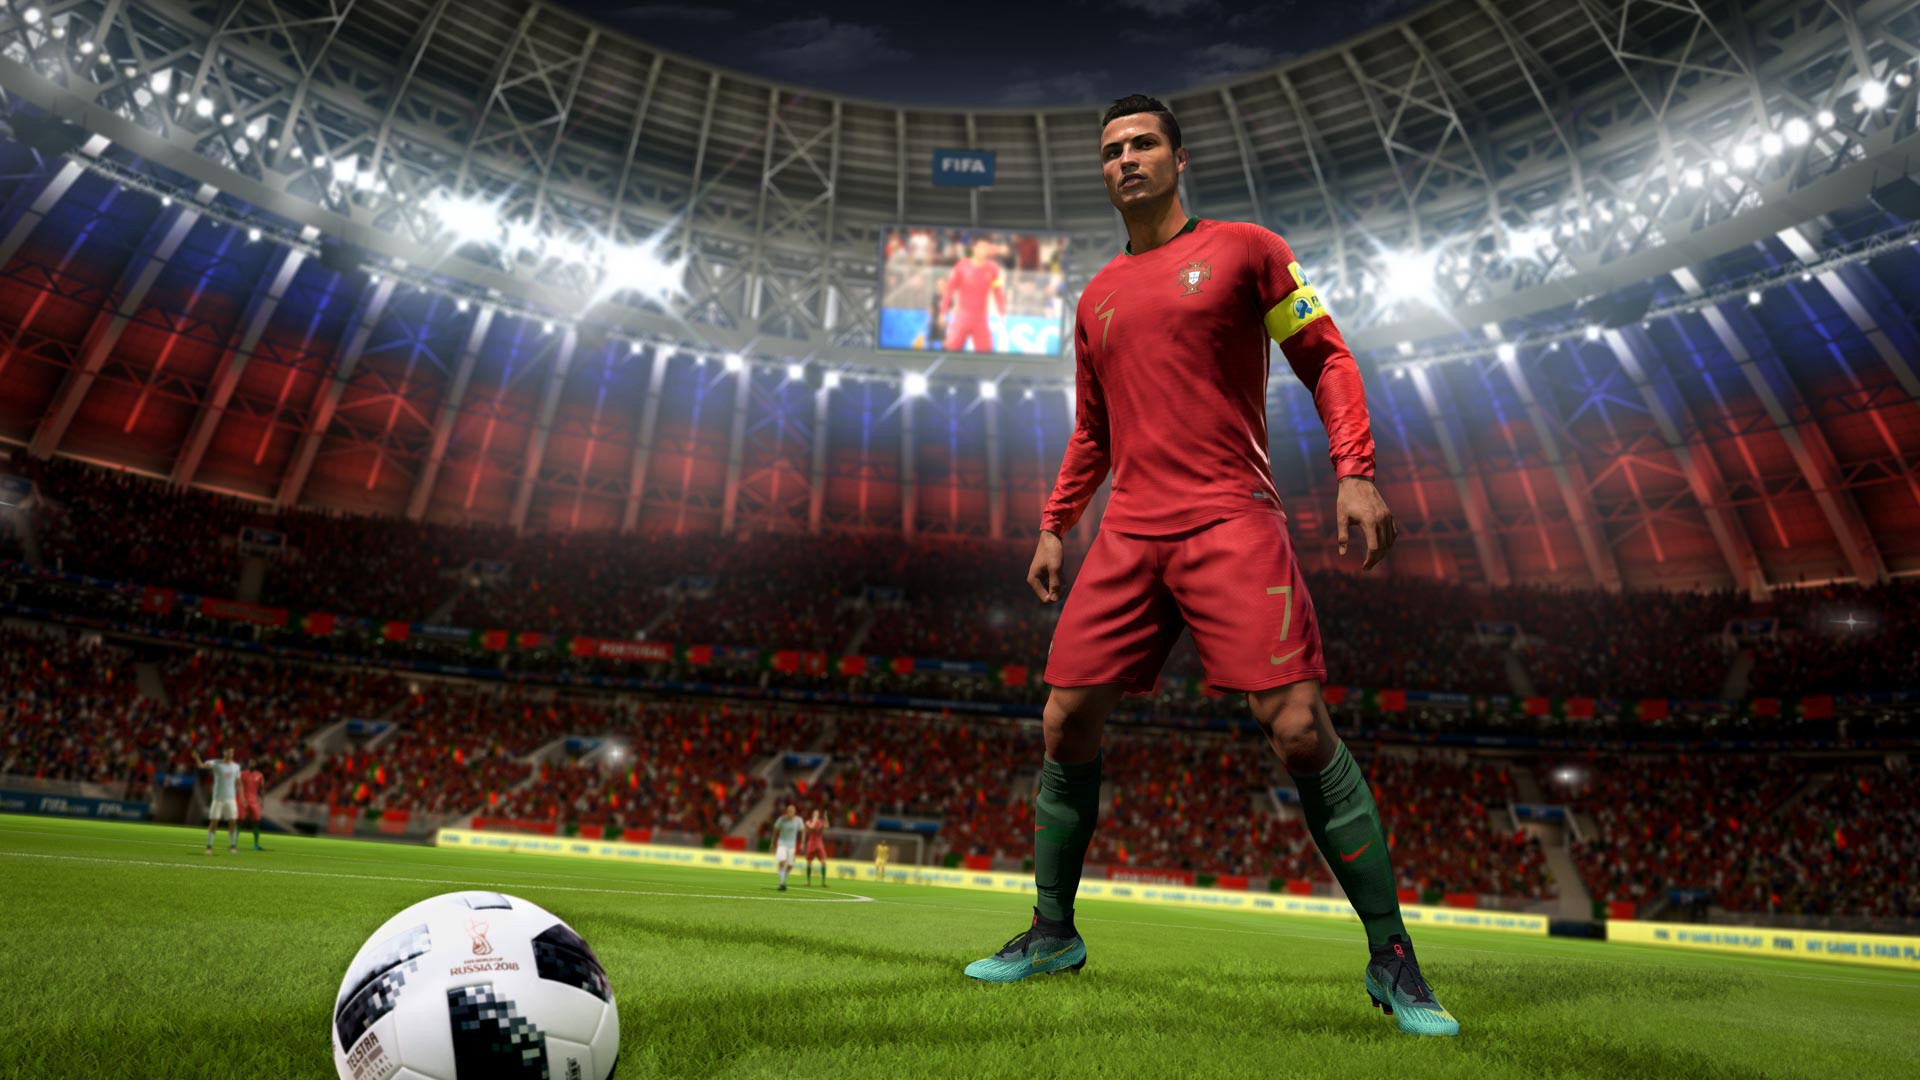 https://data1.origin.com/content/dam/originx/web/app/games/fifa/fifa-18/screenshots/FIFA18_WC_GDP_screenshot_ronaldo.jpg